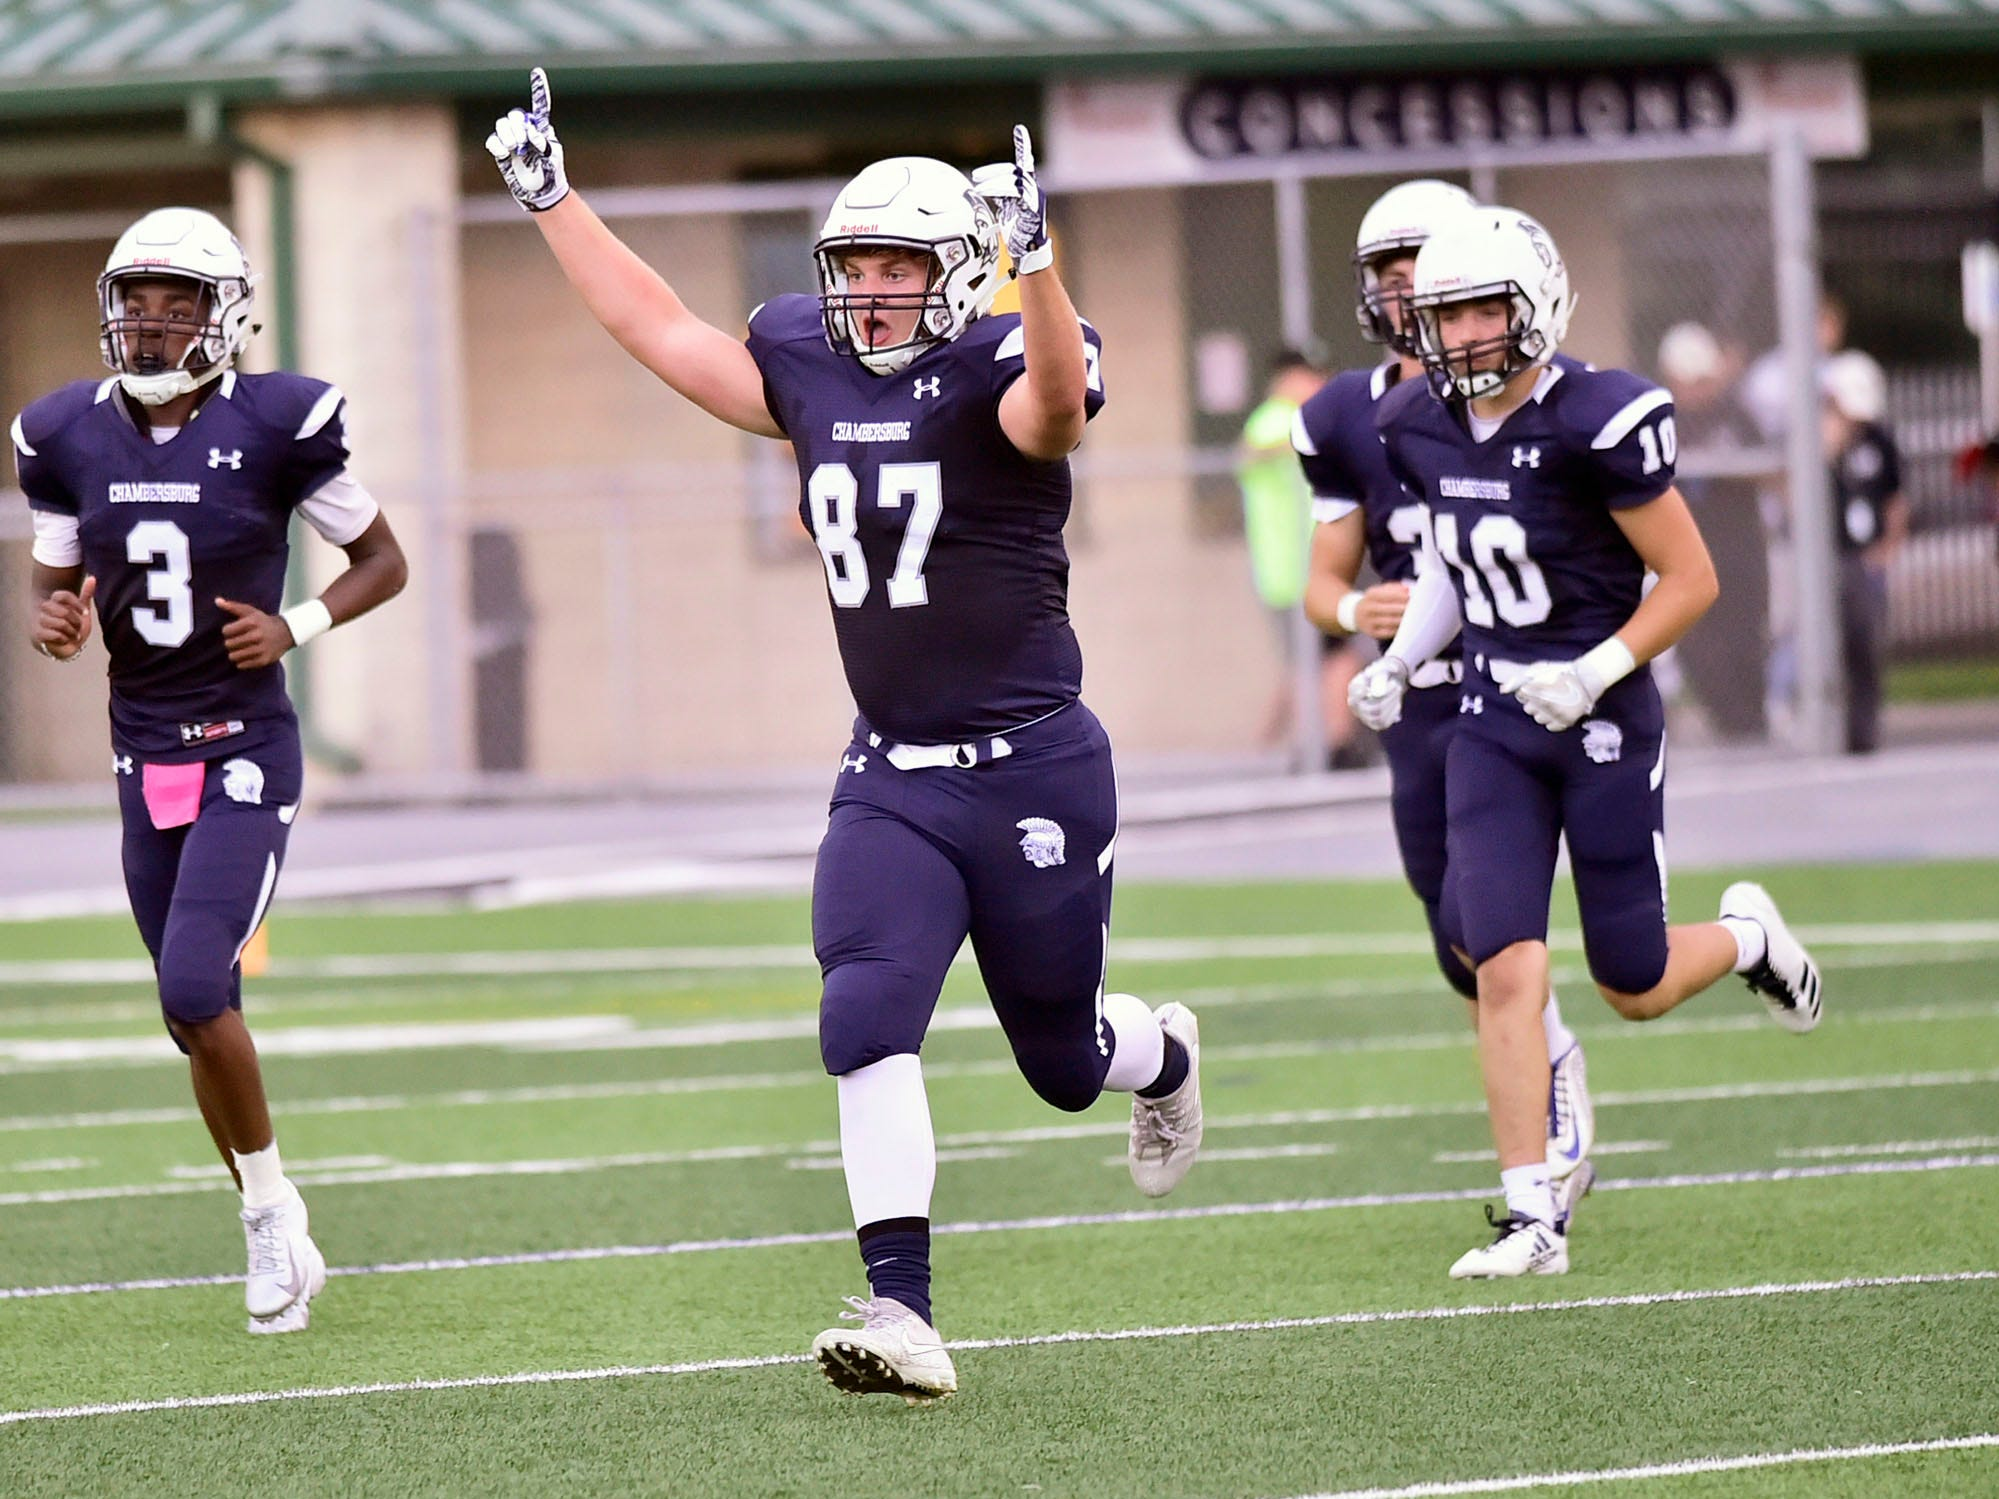 Chambersburg's Bryce Diller (87) and teammates celebrate as the Trojans take the field. Chambersburg routed South Western 51-26 in football on Friday, Aug. 31, 2018.